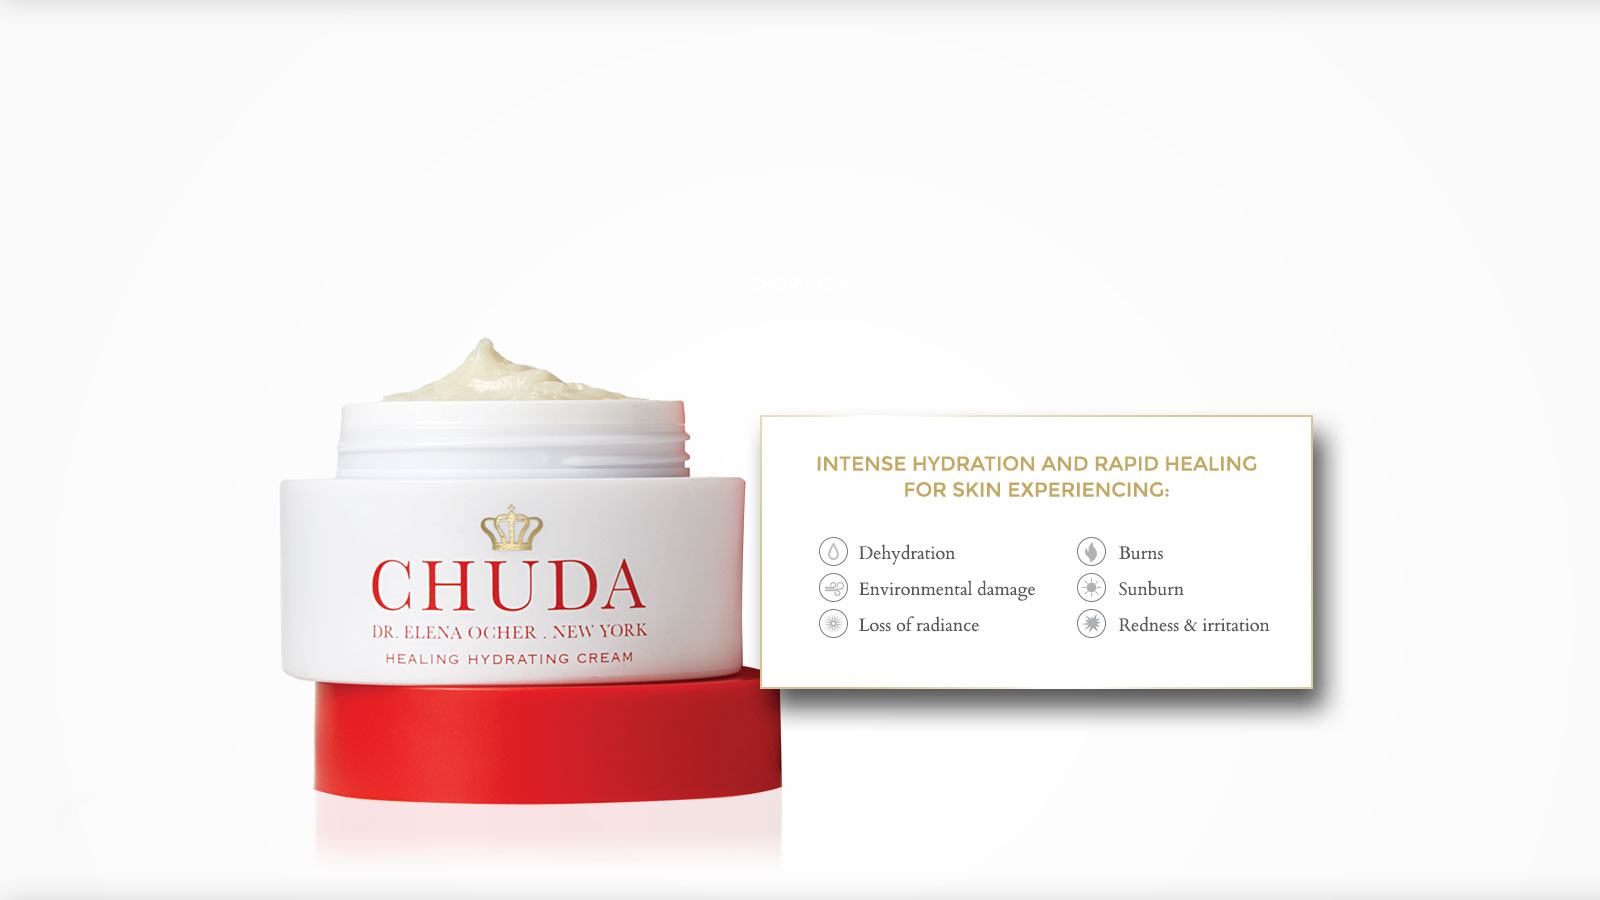 Chuda Healing Hydrating Cream provides intense hydration and rapid healing for skin